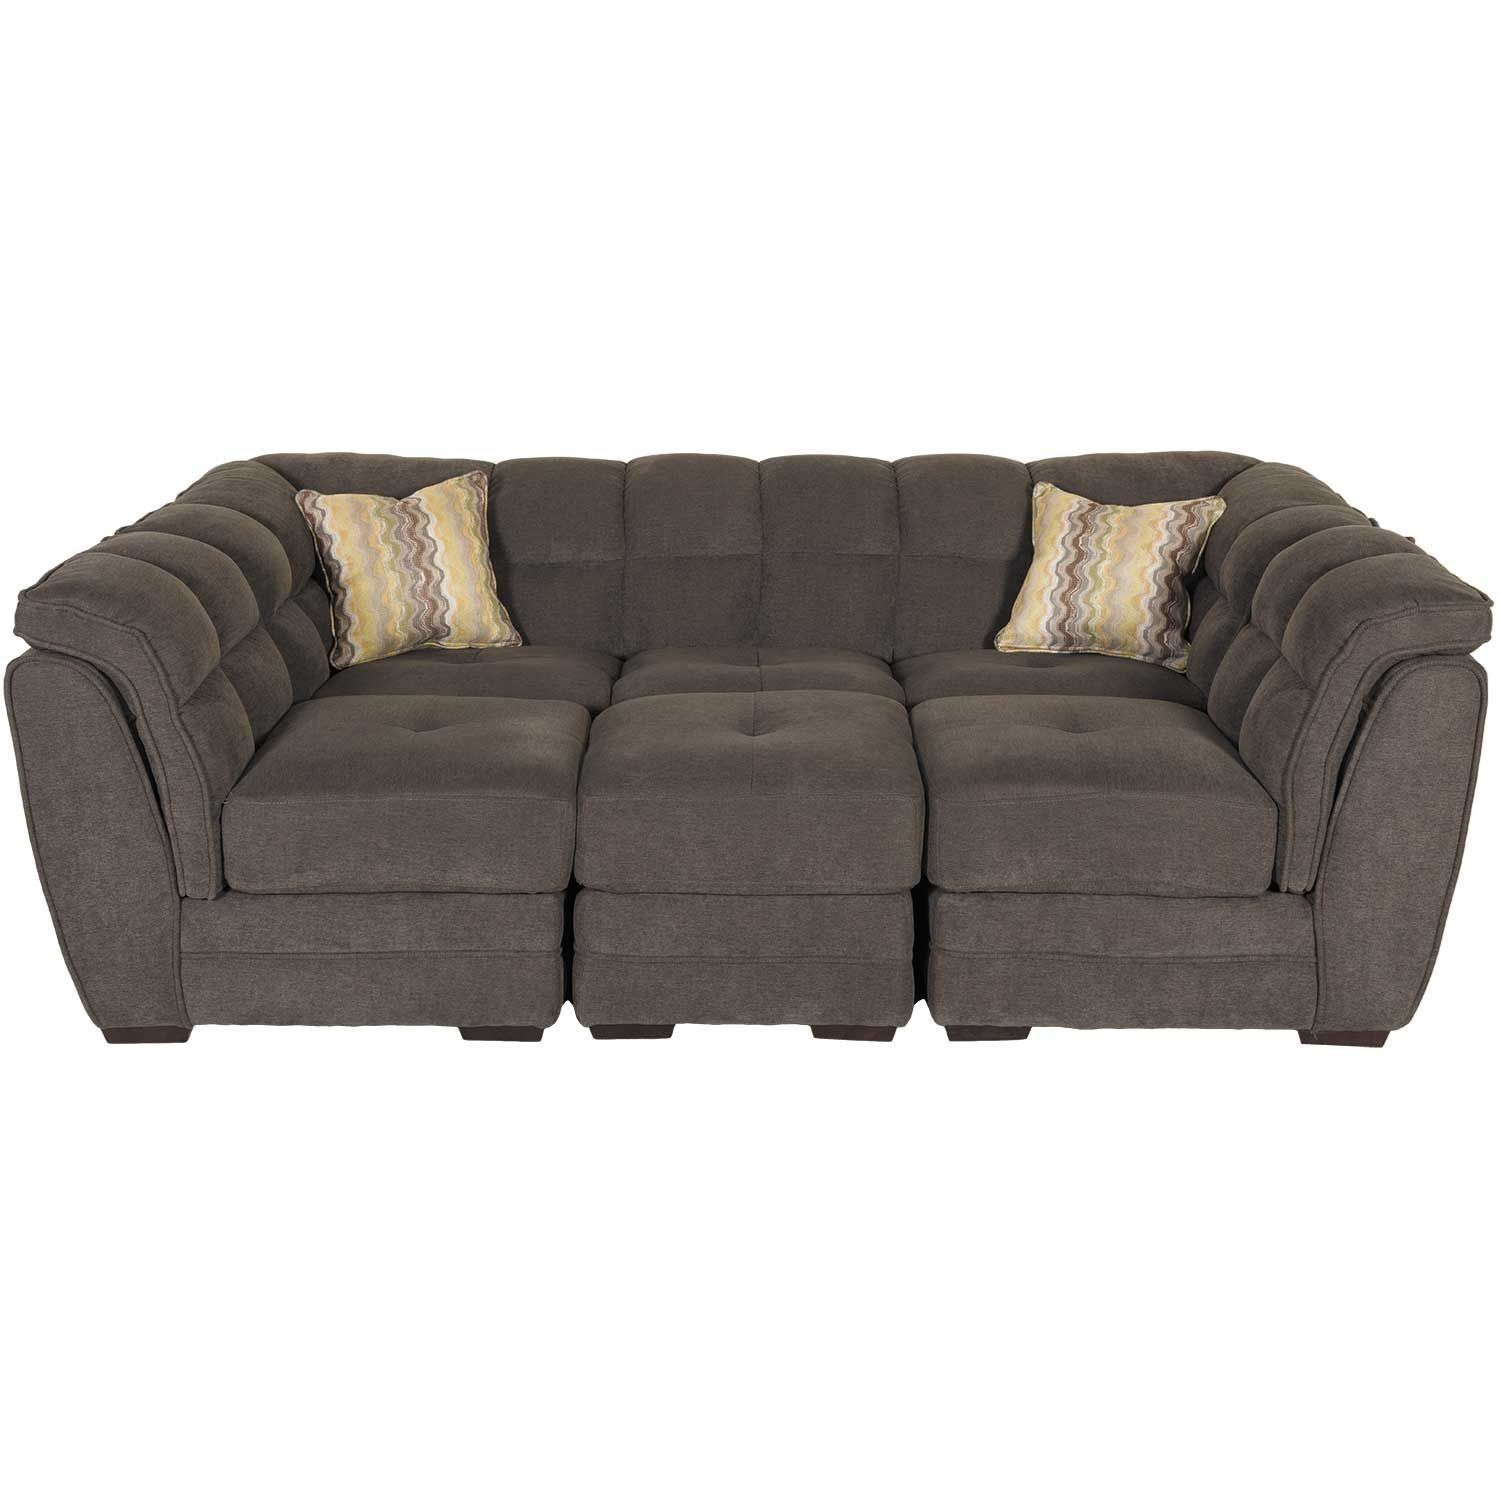 Clio Gray 4 Piece Pit Sectional 1A 100 4PC Vogue Furniture Direct